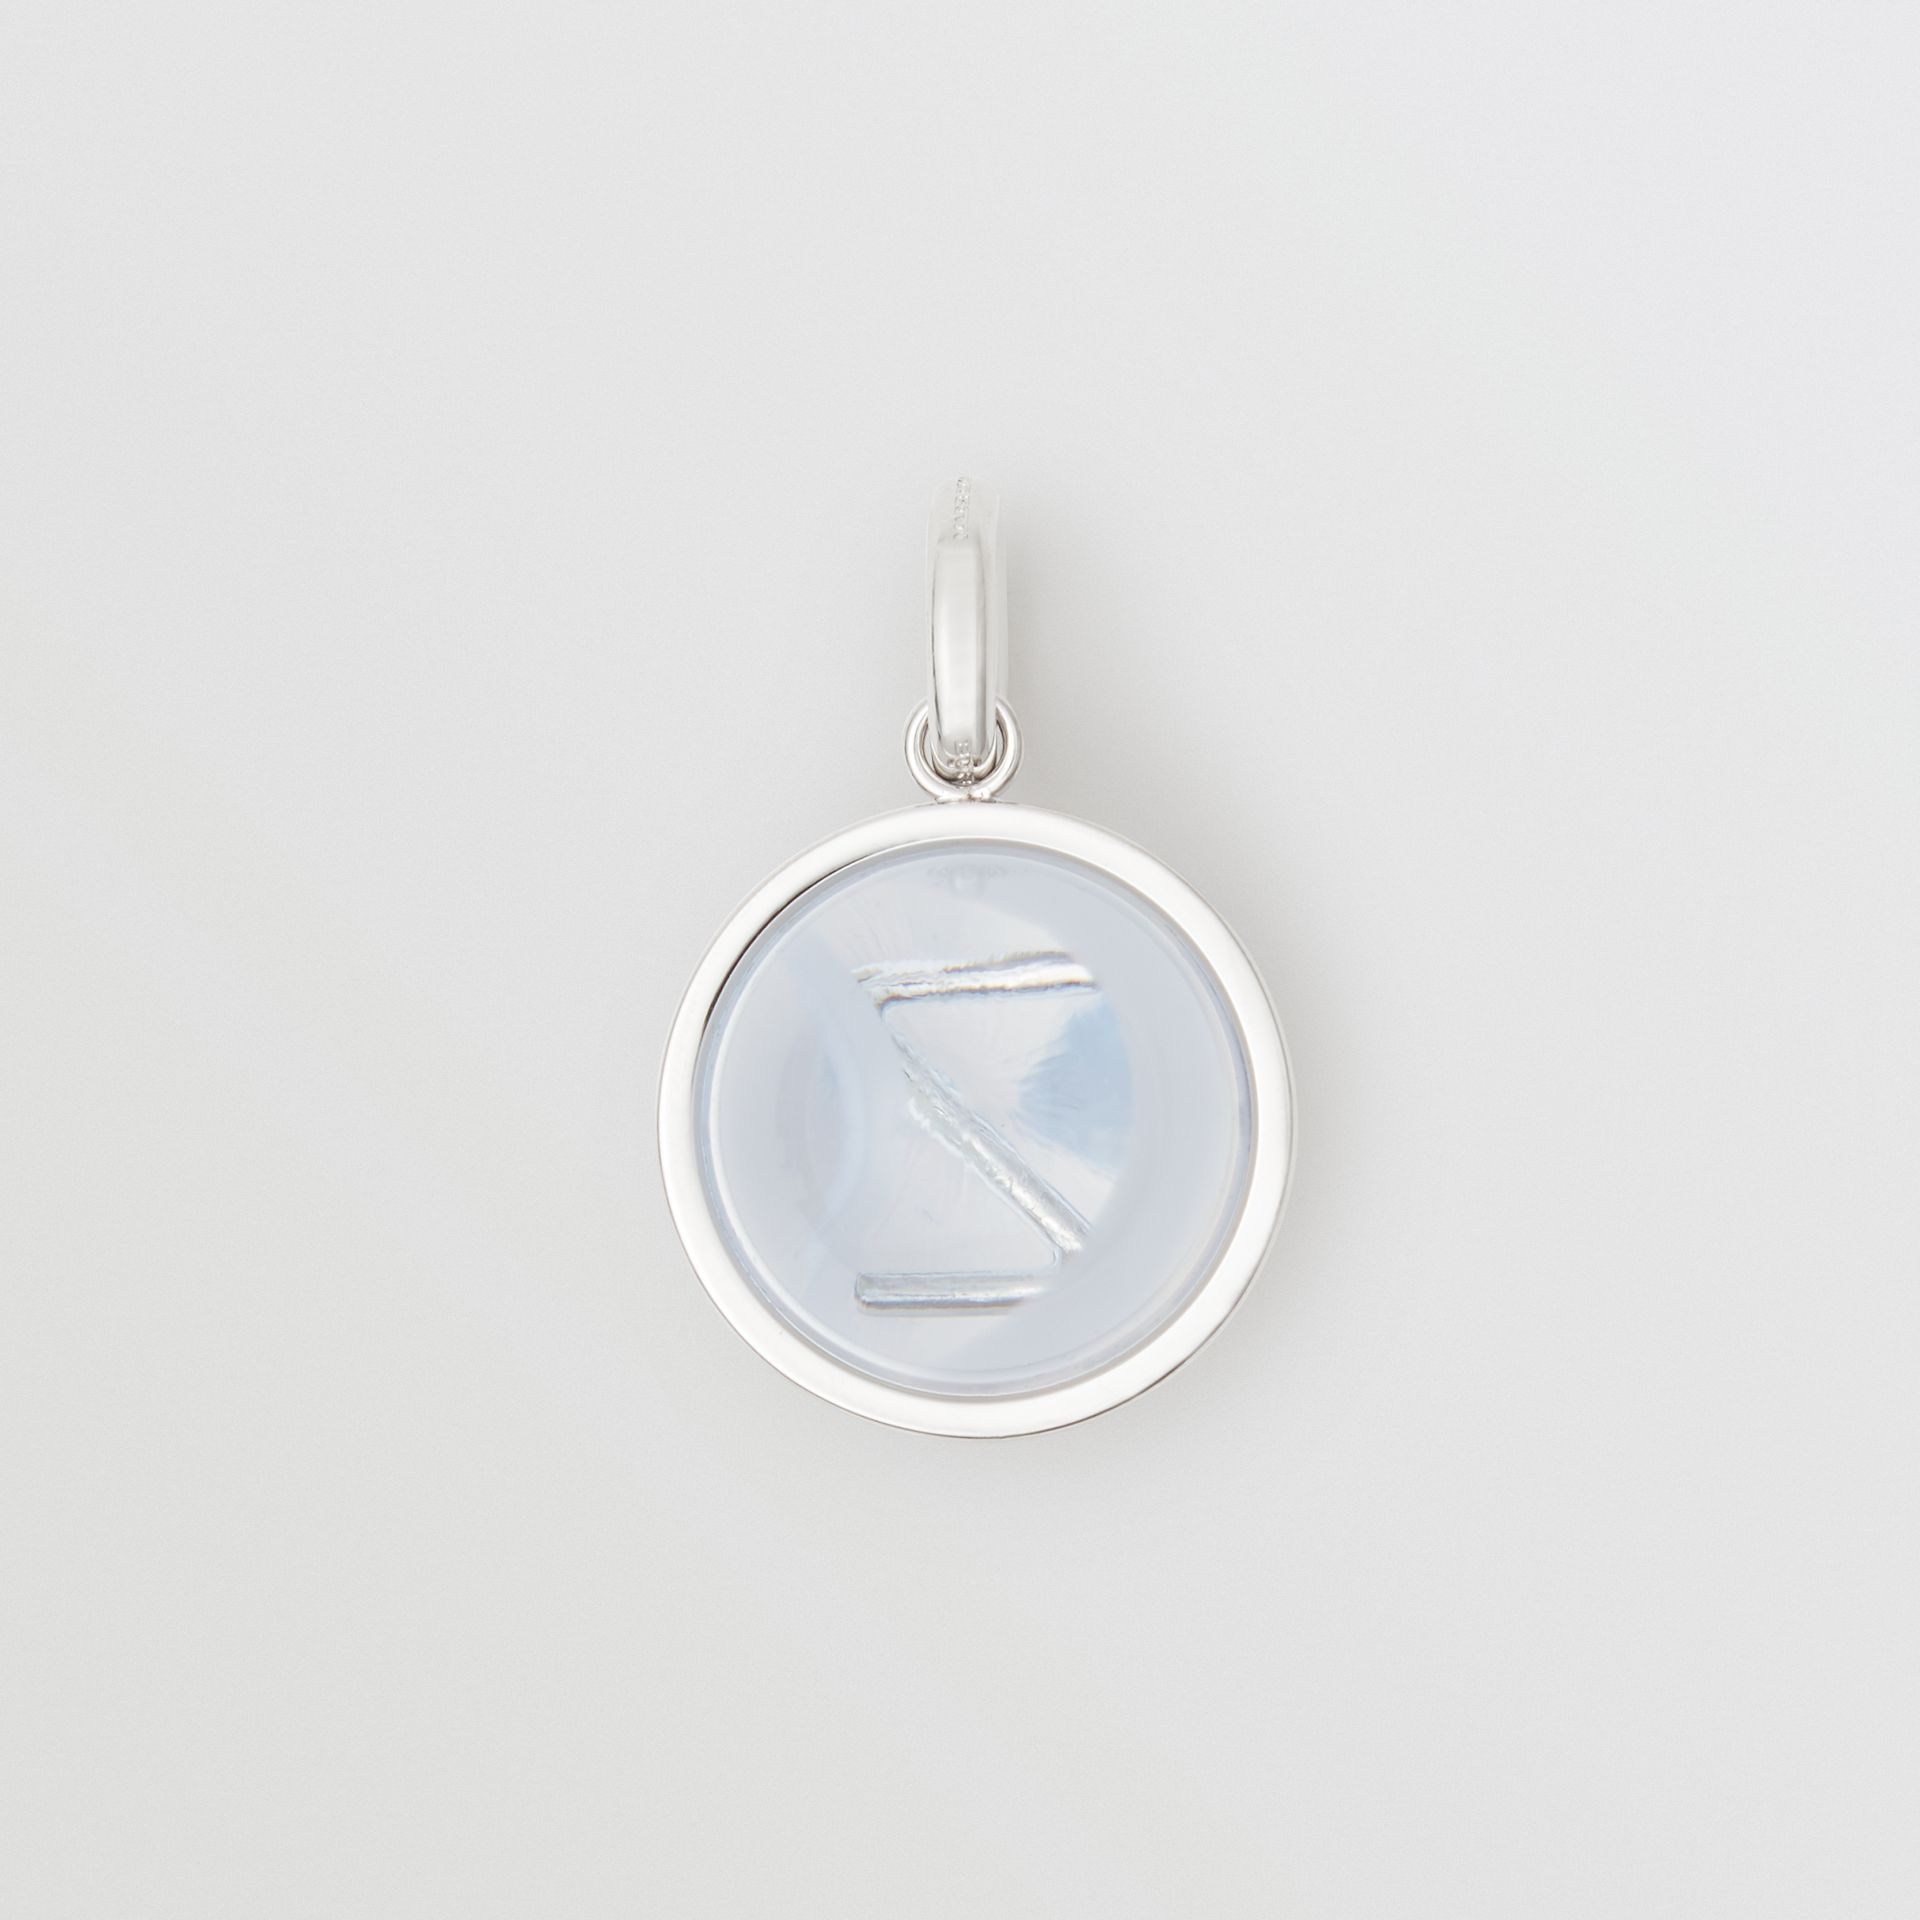 Marbled Resin 'Z' Alphabet Charm in Palladio/nacre - Women | Burberry - gallery image 1